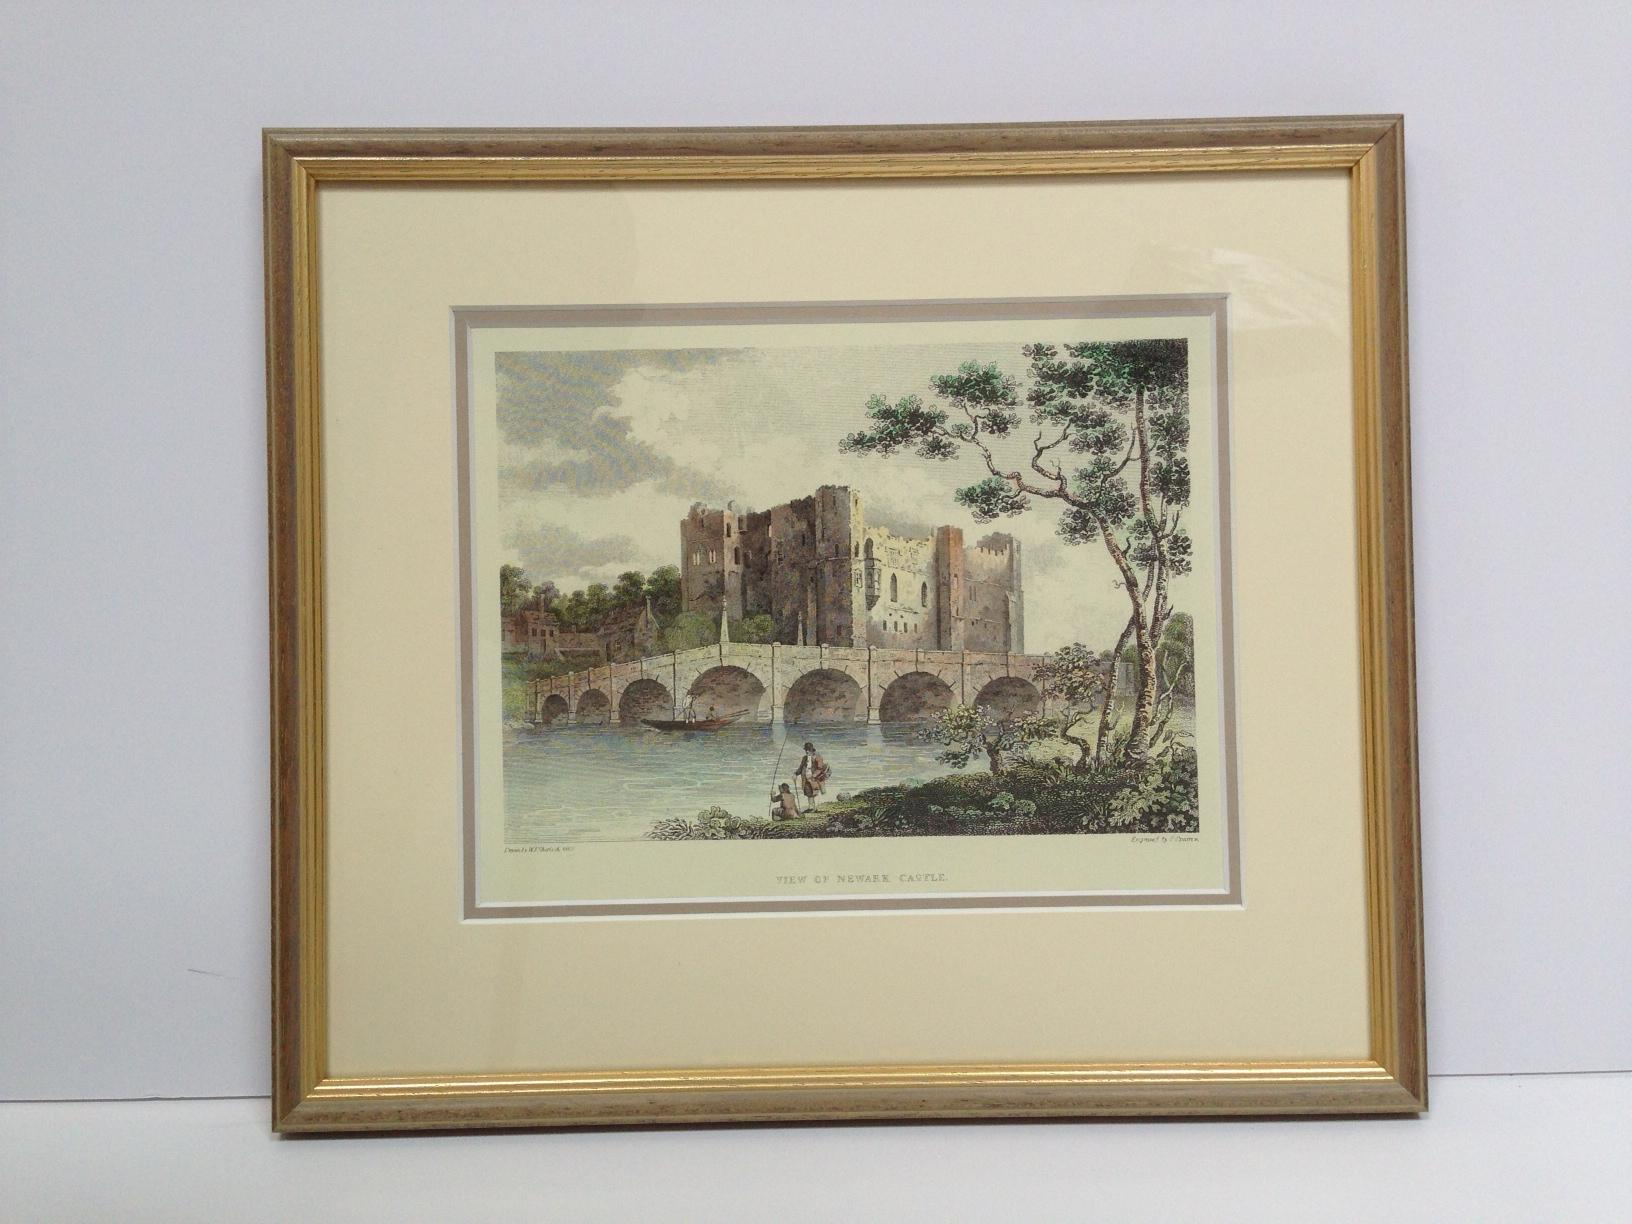 Newark castle engraving framed